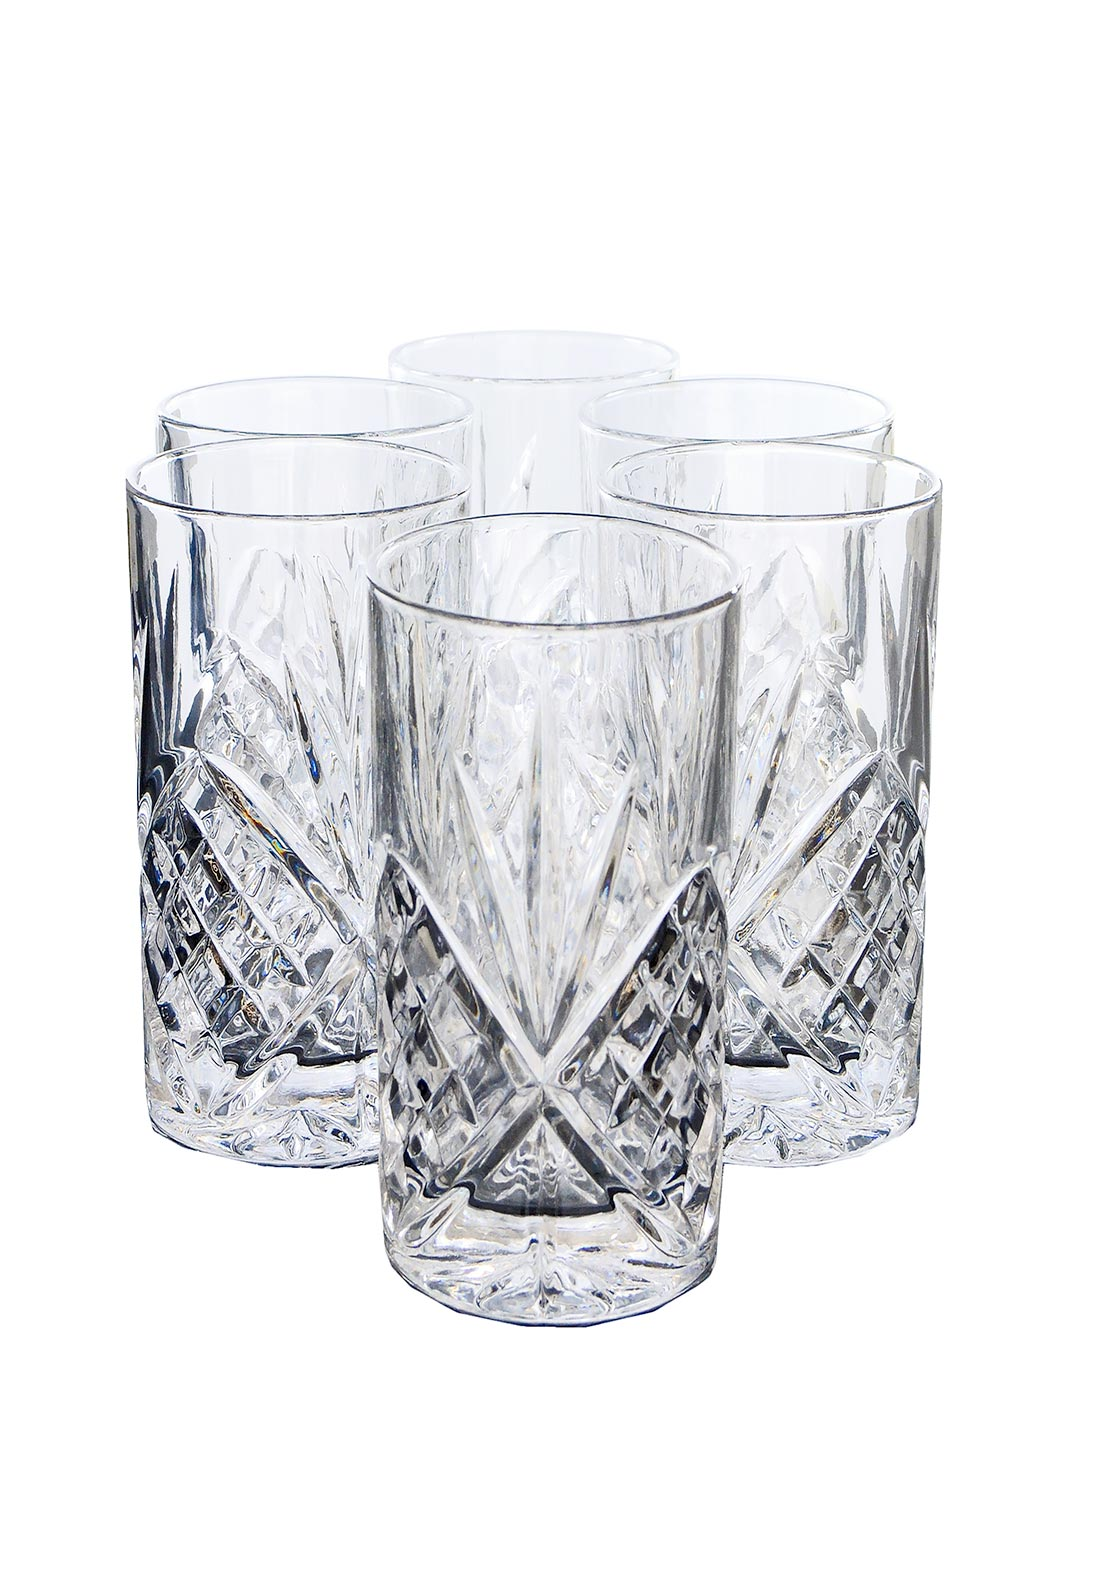 Killarney Crystal Ireland Derrnane Hi Ball Glasses, Set of 6